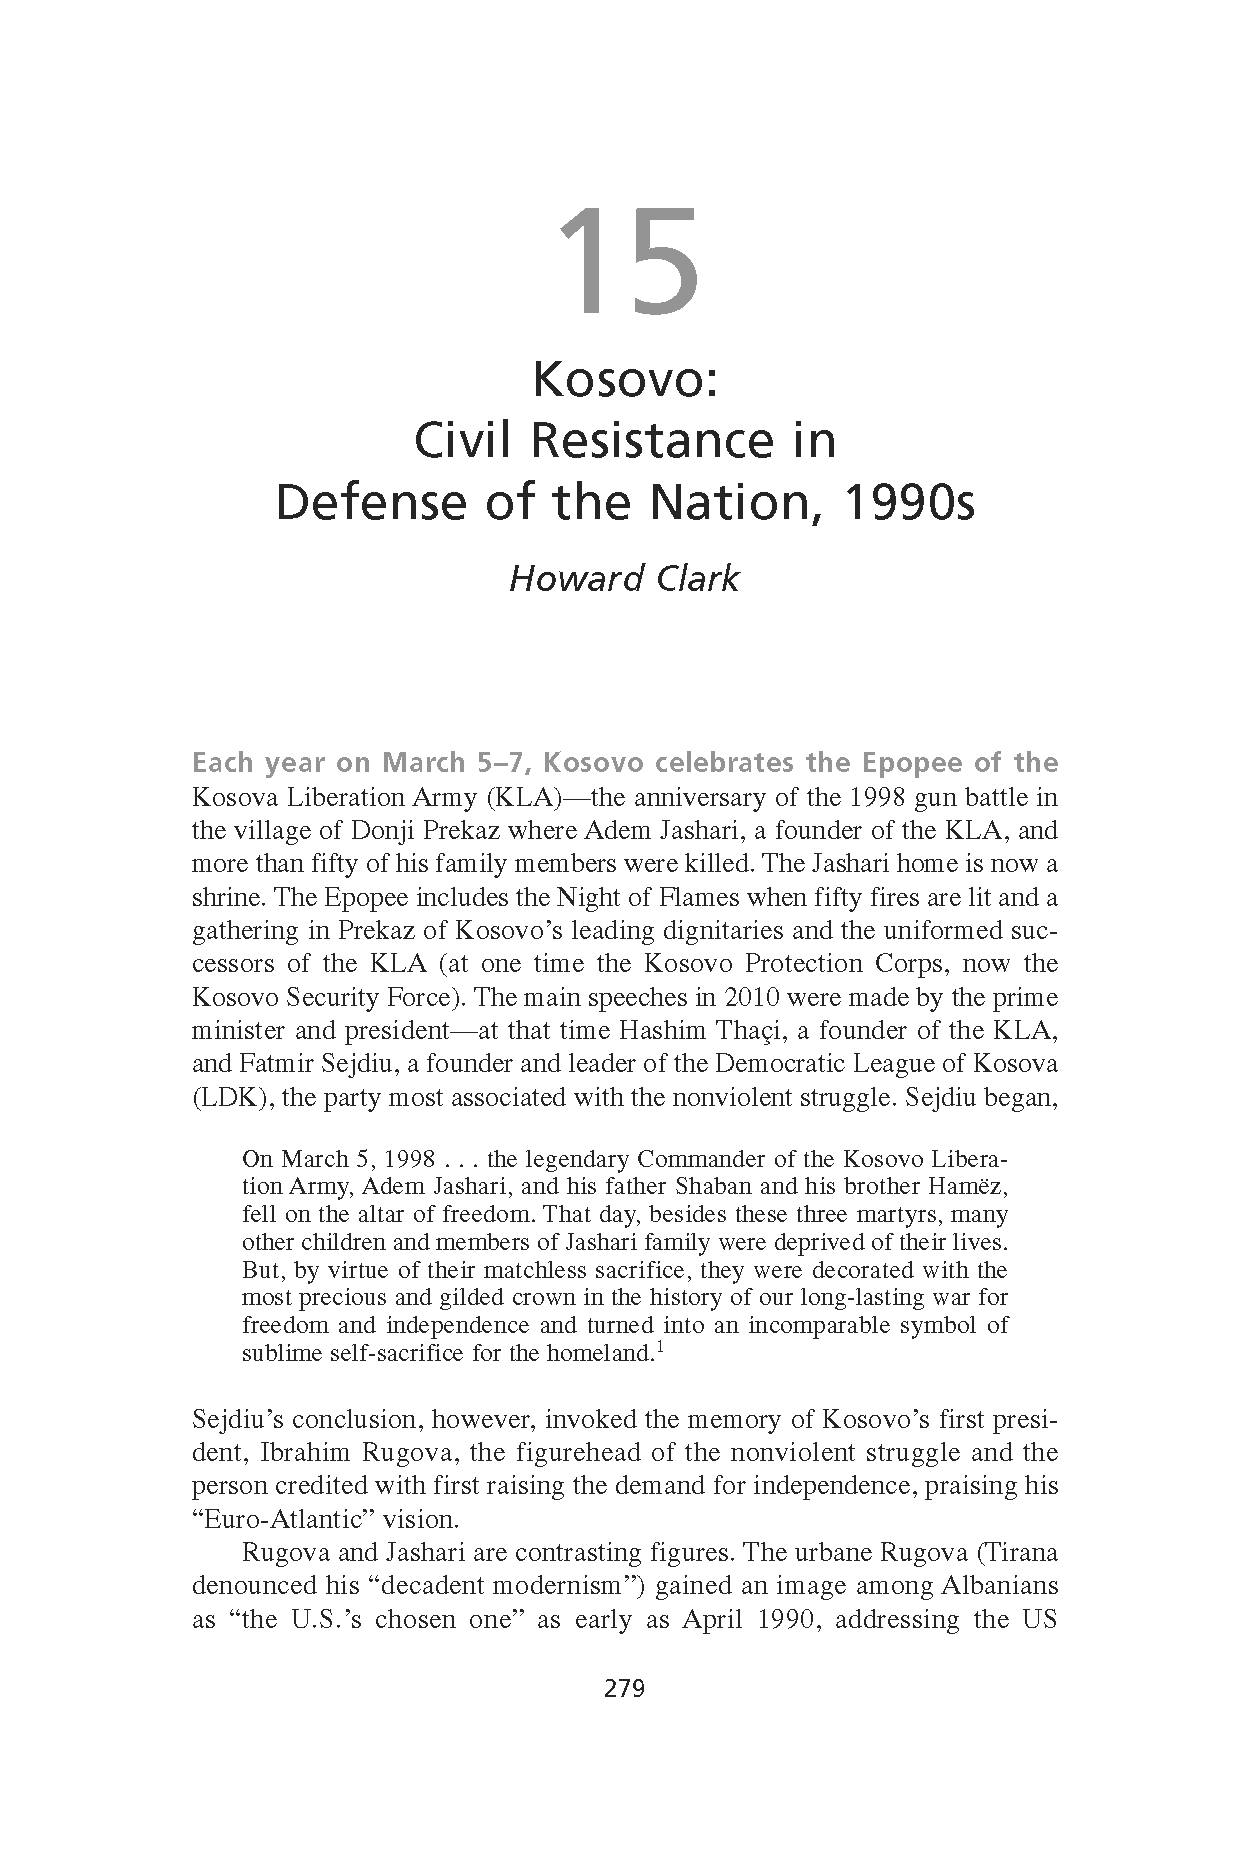 Kosovo: Civil Resistance in Defense of the Nation, 1990s (Chapter 15 from 'Recovering Nonviolent History')